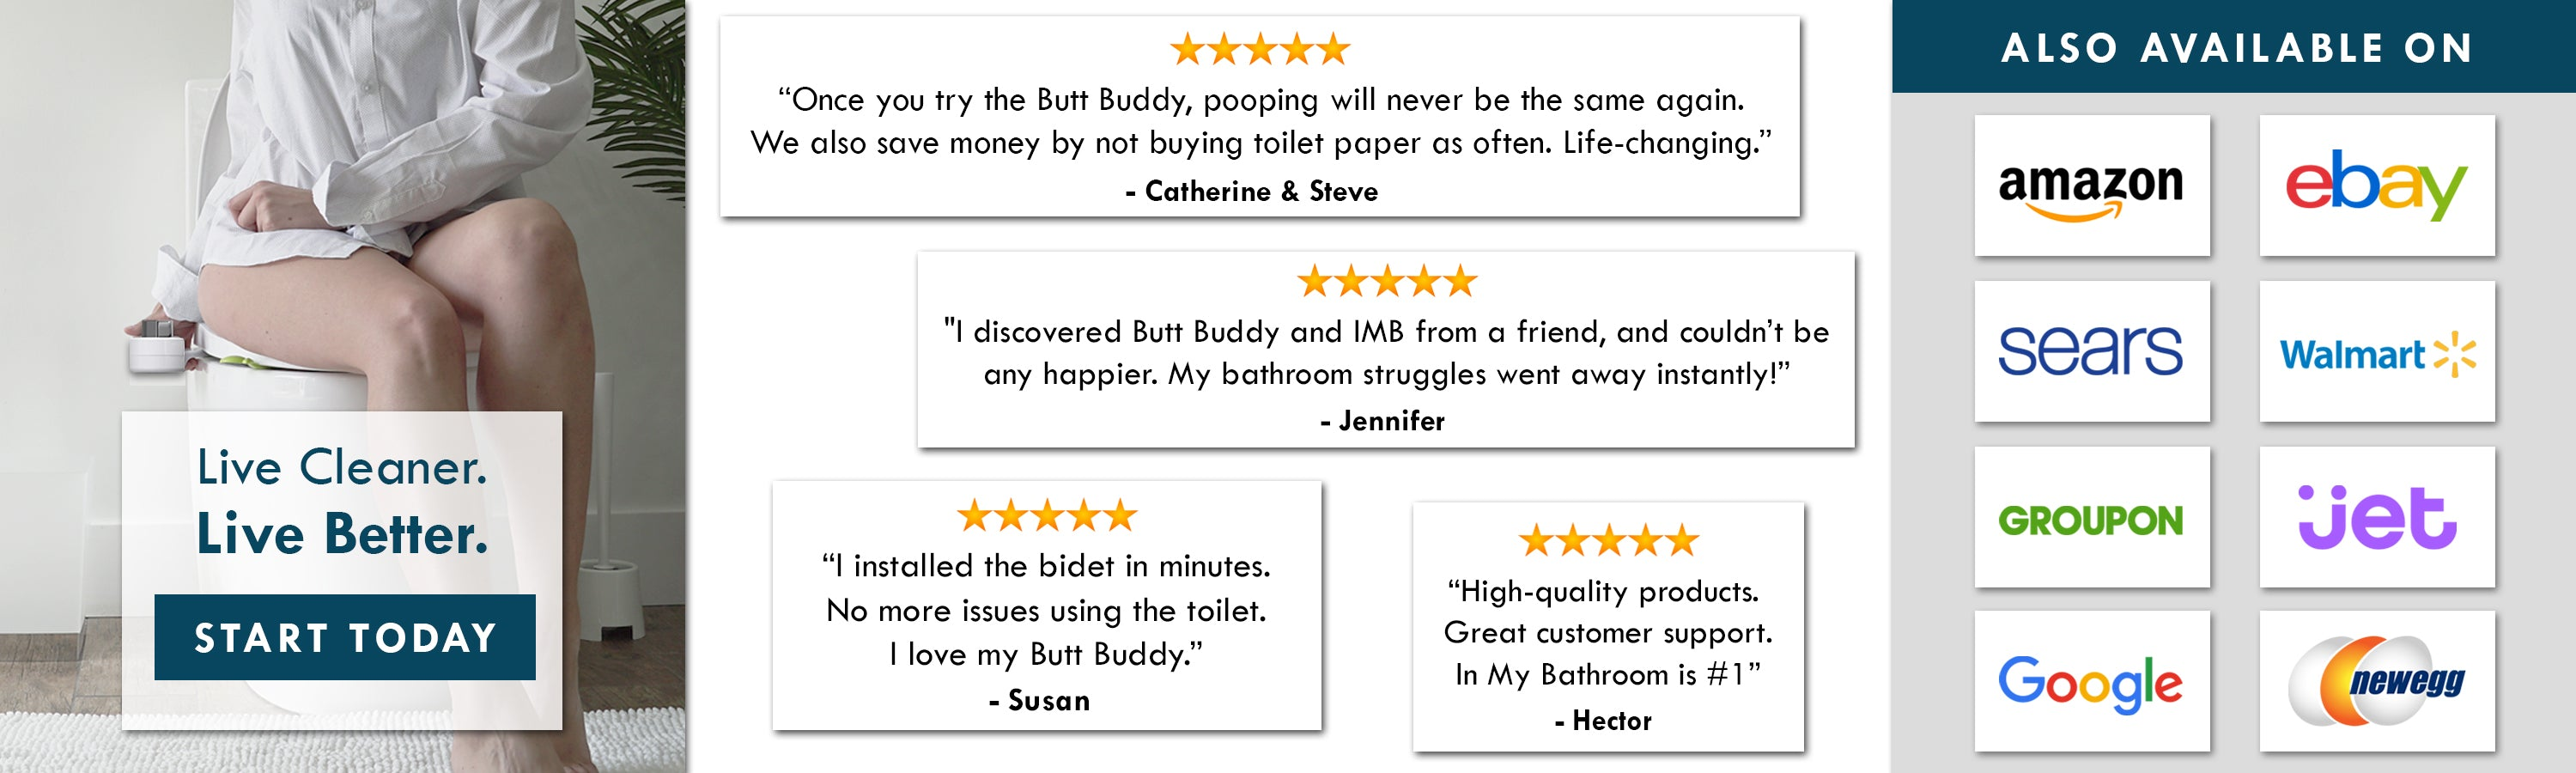 In My Bathroom (IMB) | Butt Buddy - Bidet Toilet Attachment - BBB - Live Cleaner, Live Better - 5 Star Product - Reviews - Also Available On - Amazon - Walmart - Ebay - Stores